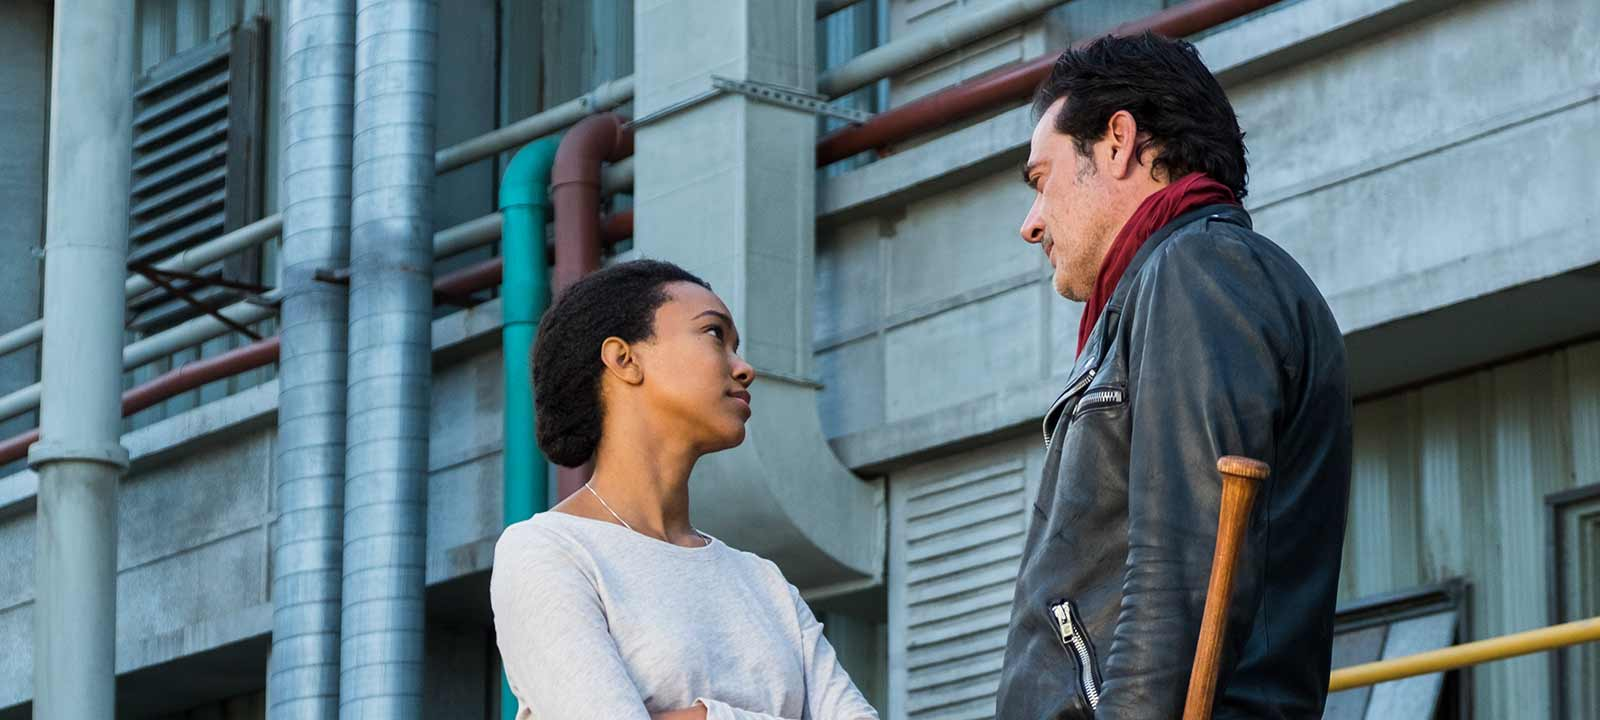 the-walking-dead-episode-716-sasha-martin-green-negan-morgan-800×600-interview